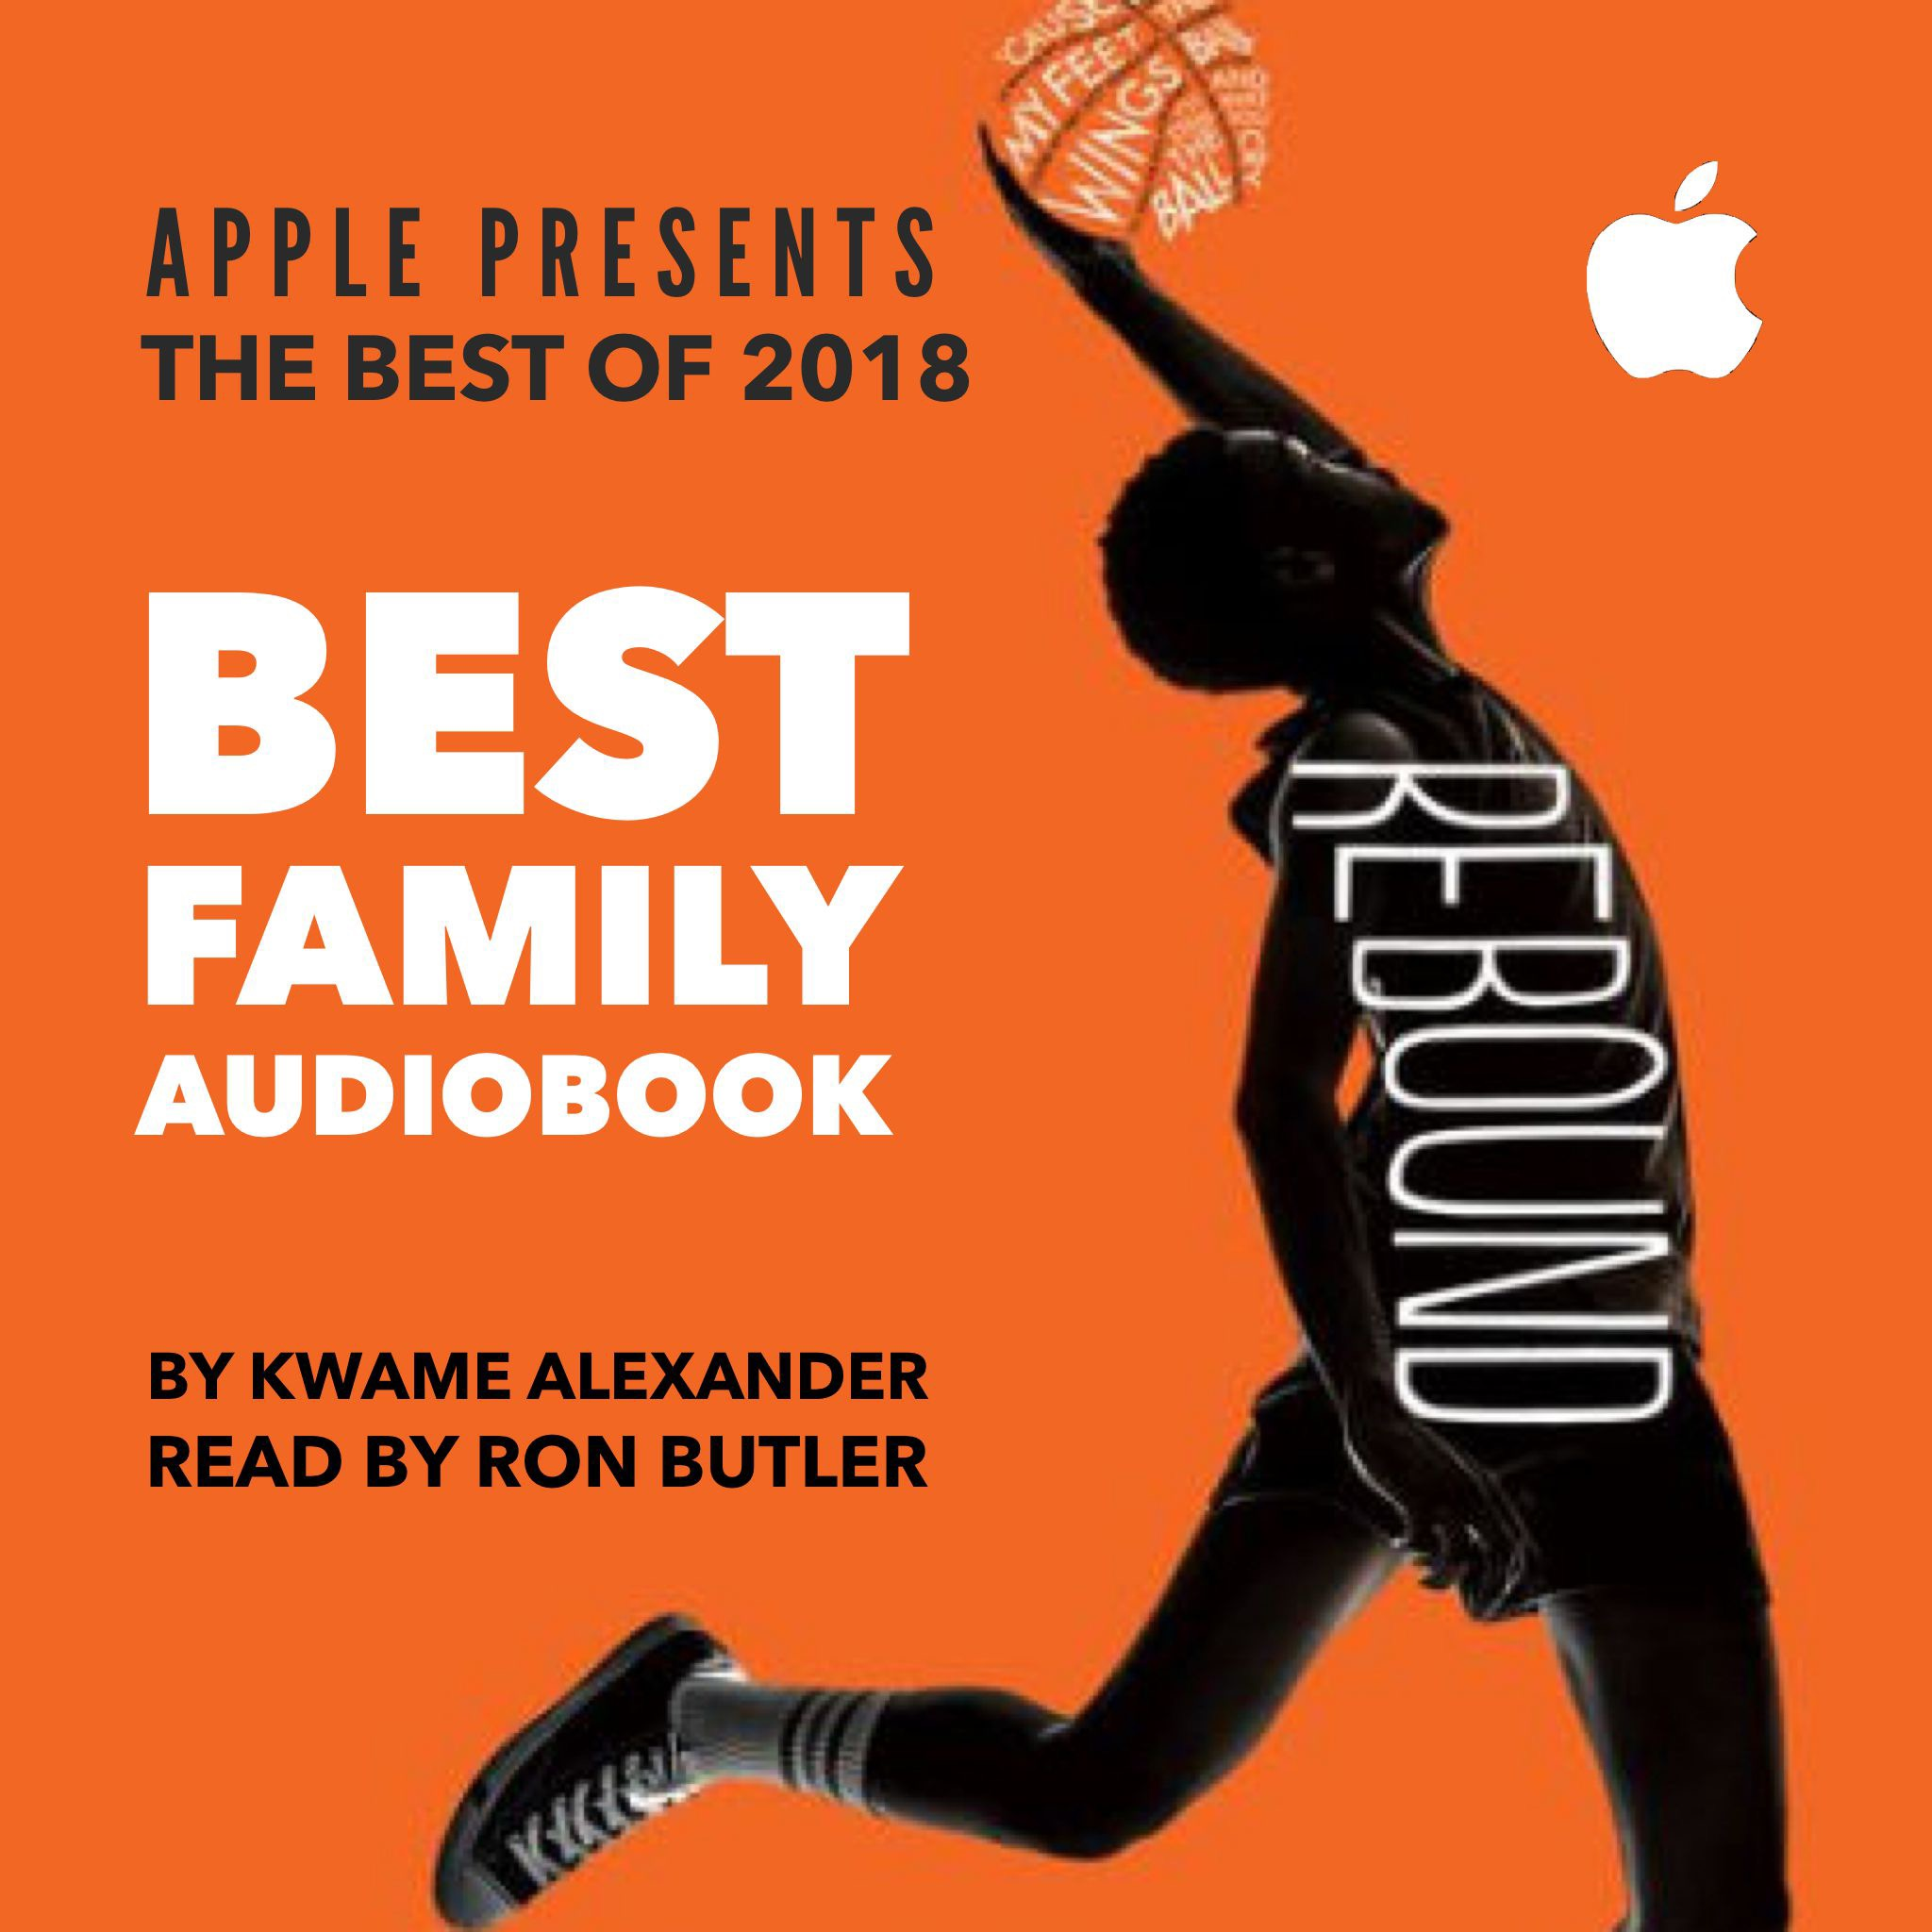 """See the full list of """"Apple Presents the Best of 2018"""" here."""